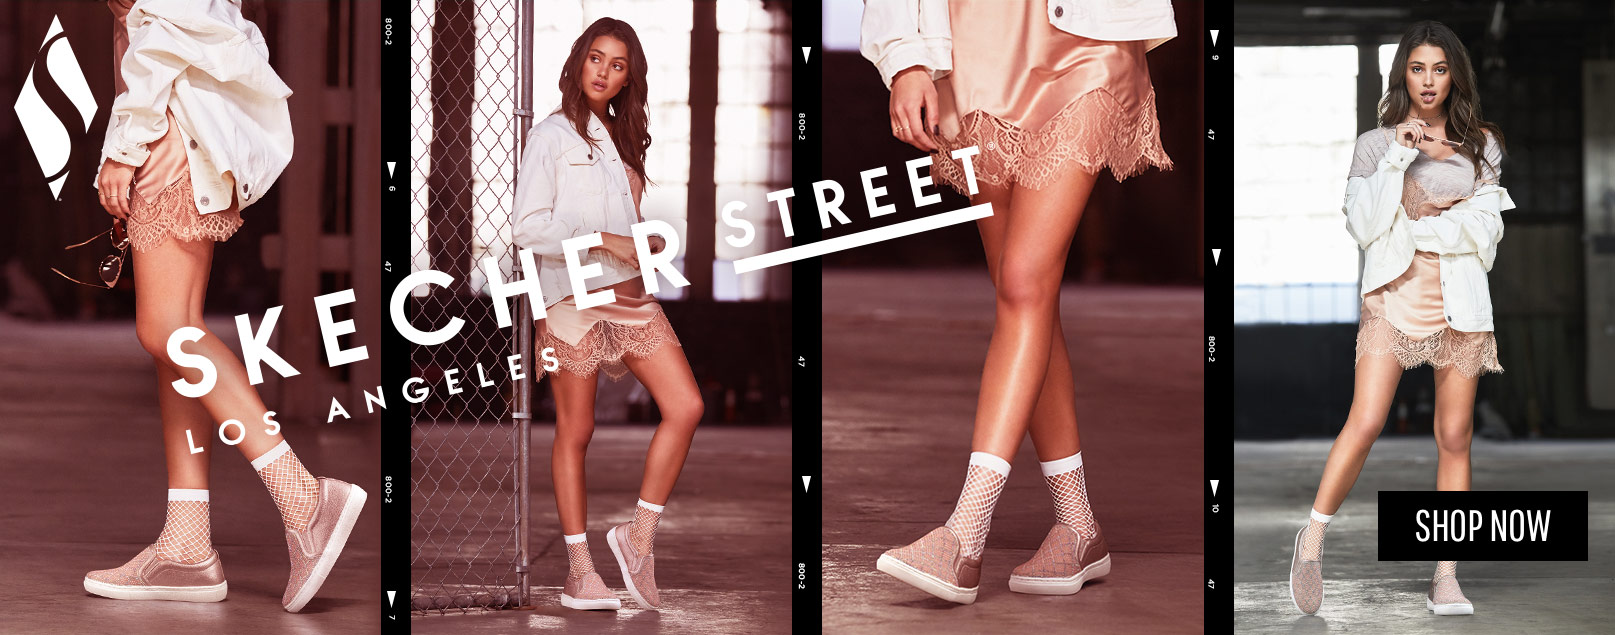 Style. Comfort. Confidence with Skecher Street.